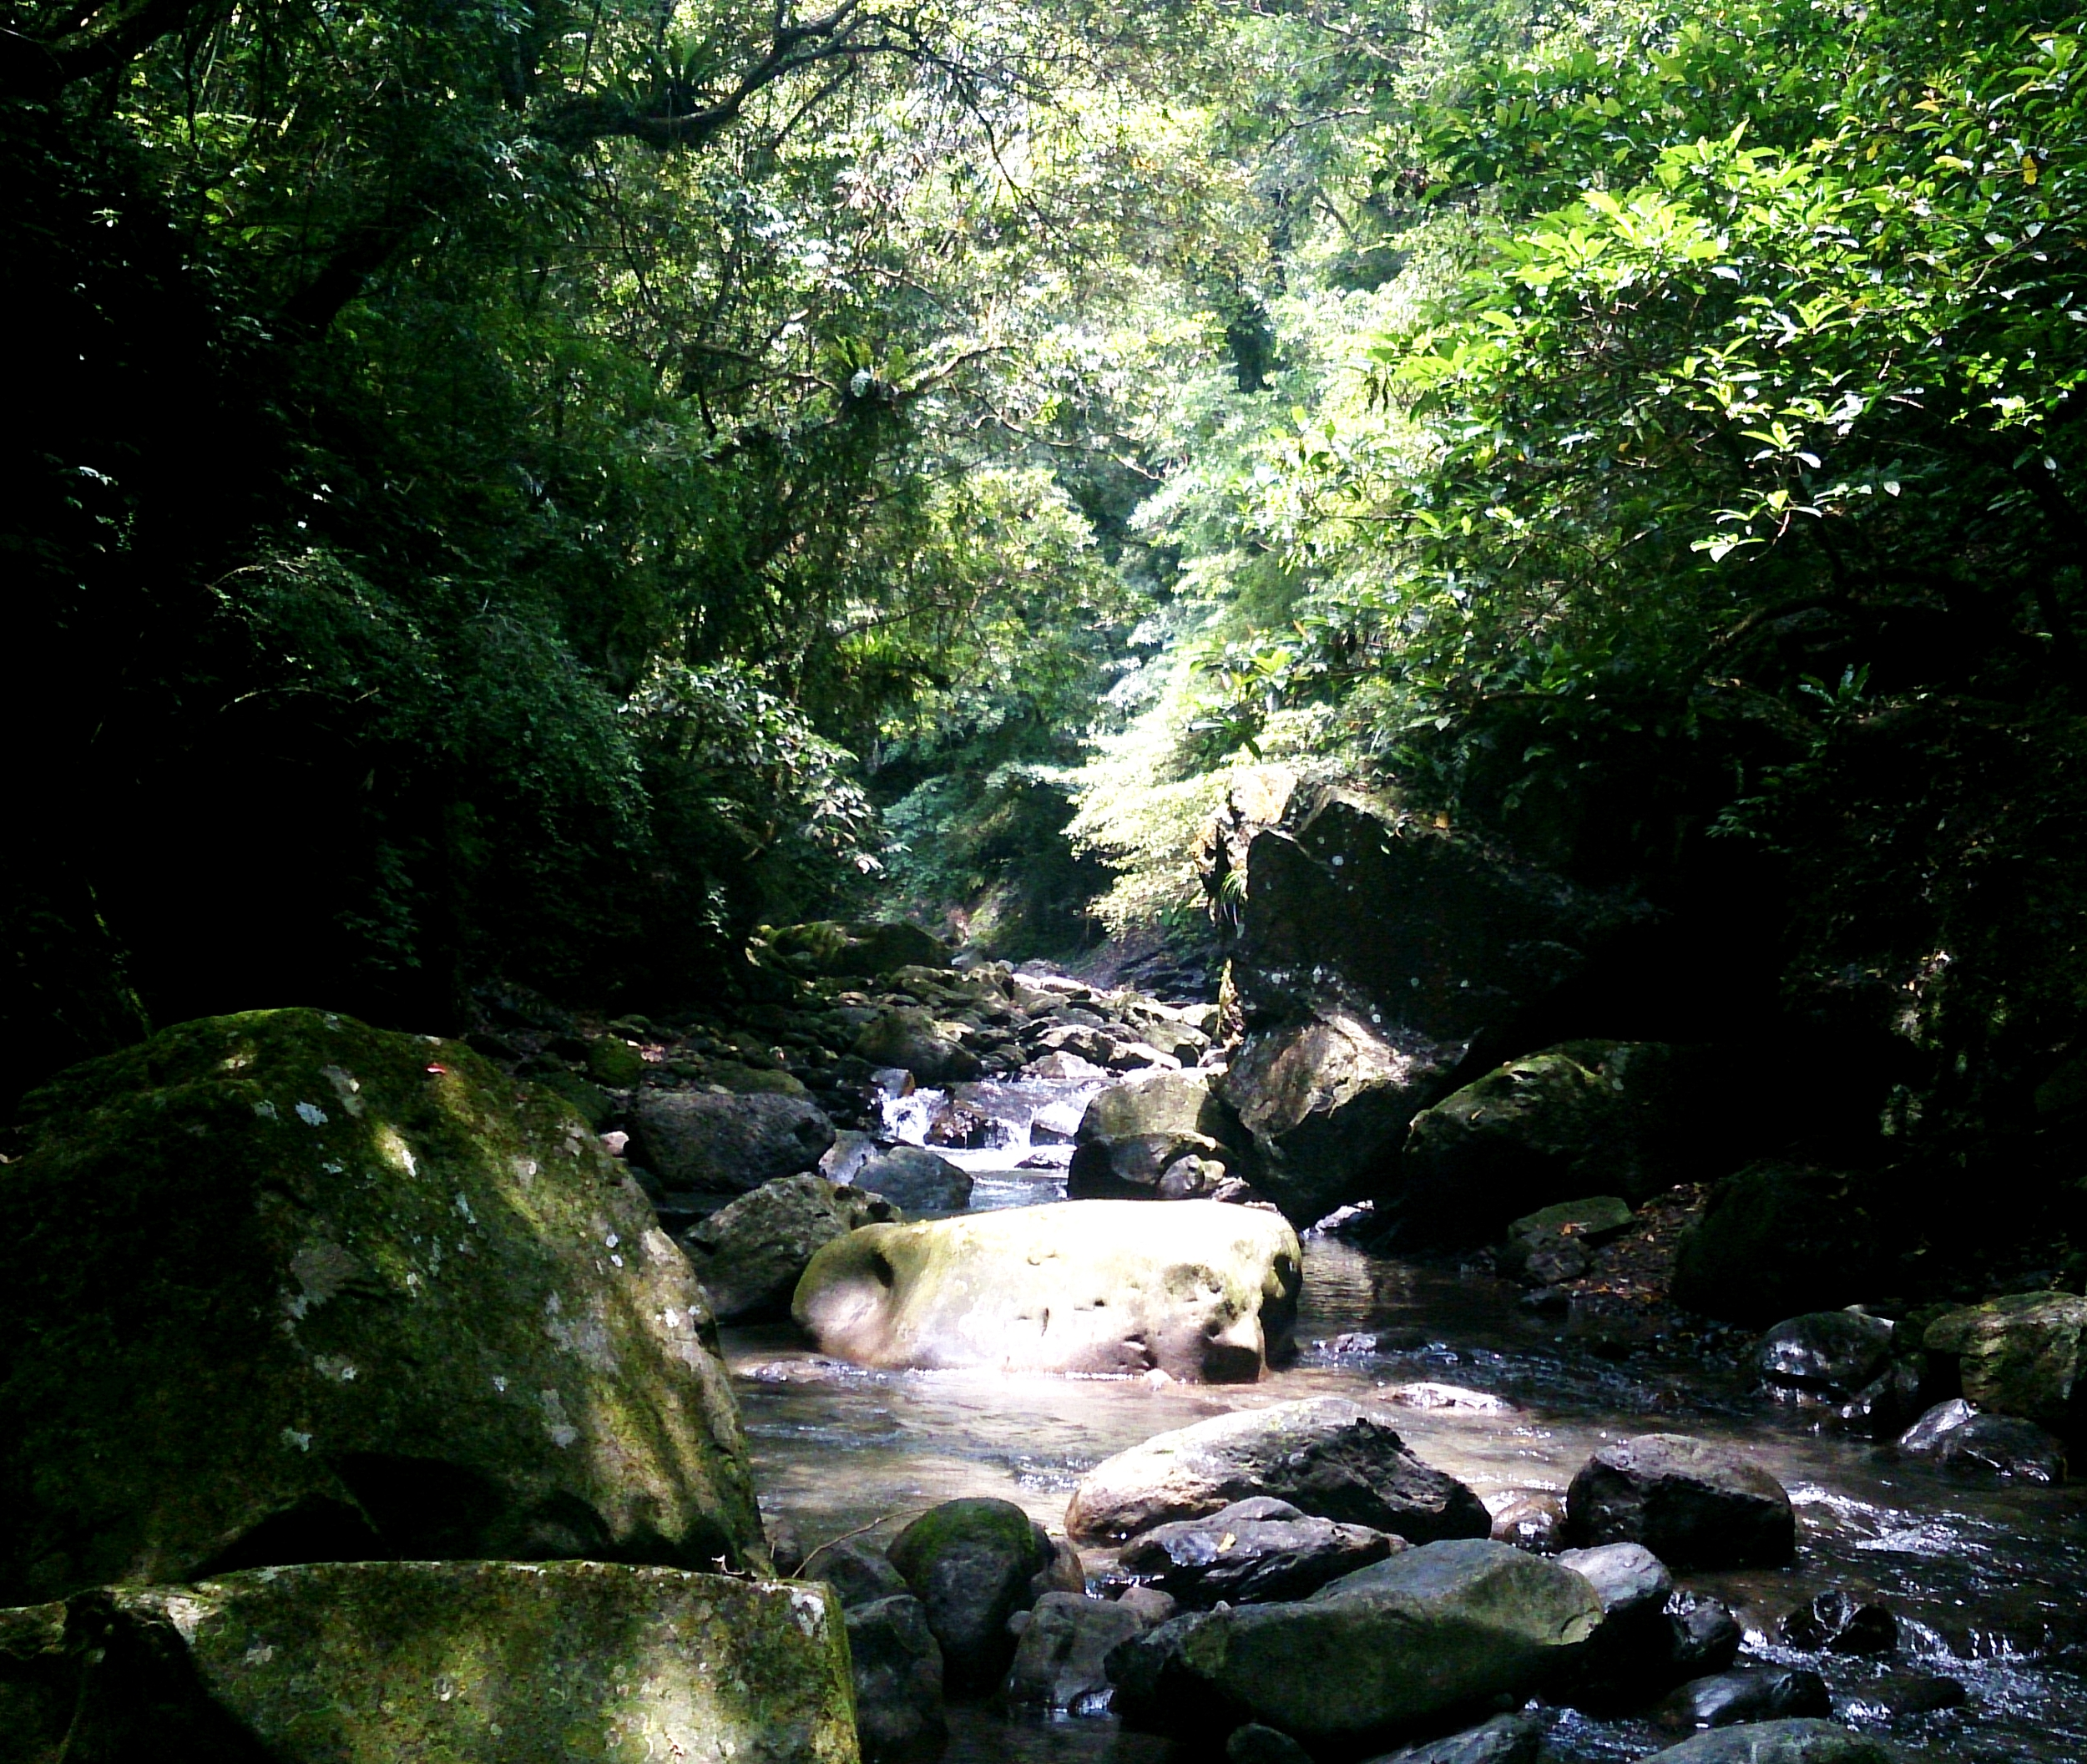 2015: Typical river stretch. The forest is thick and it feels very remote.